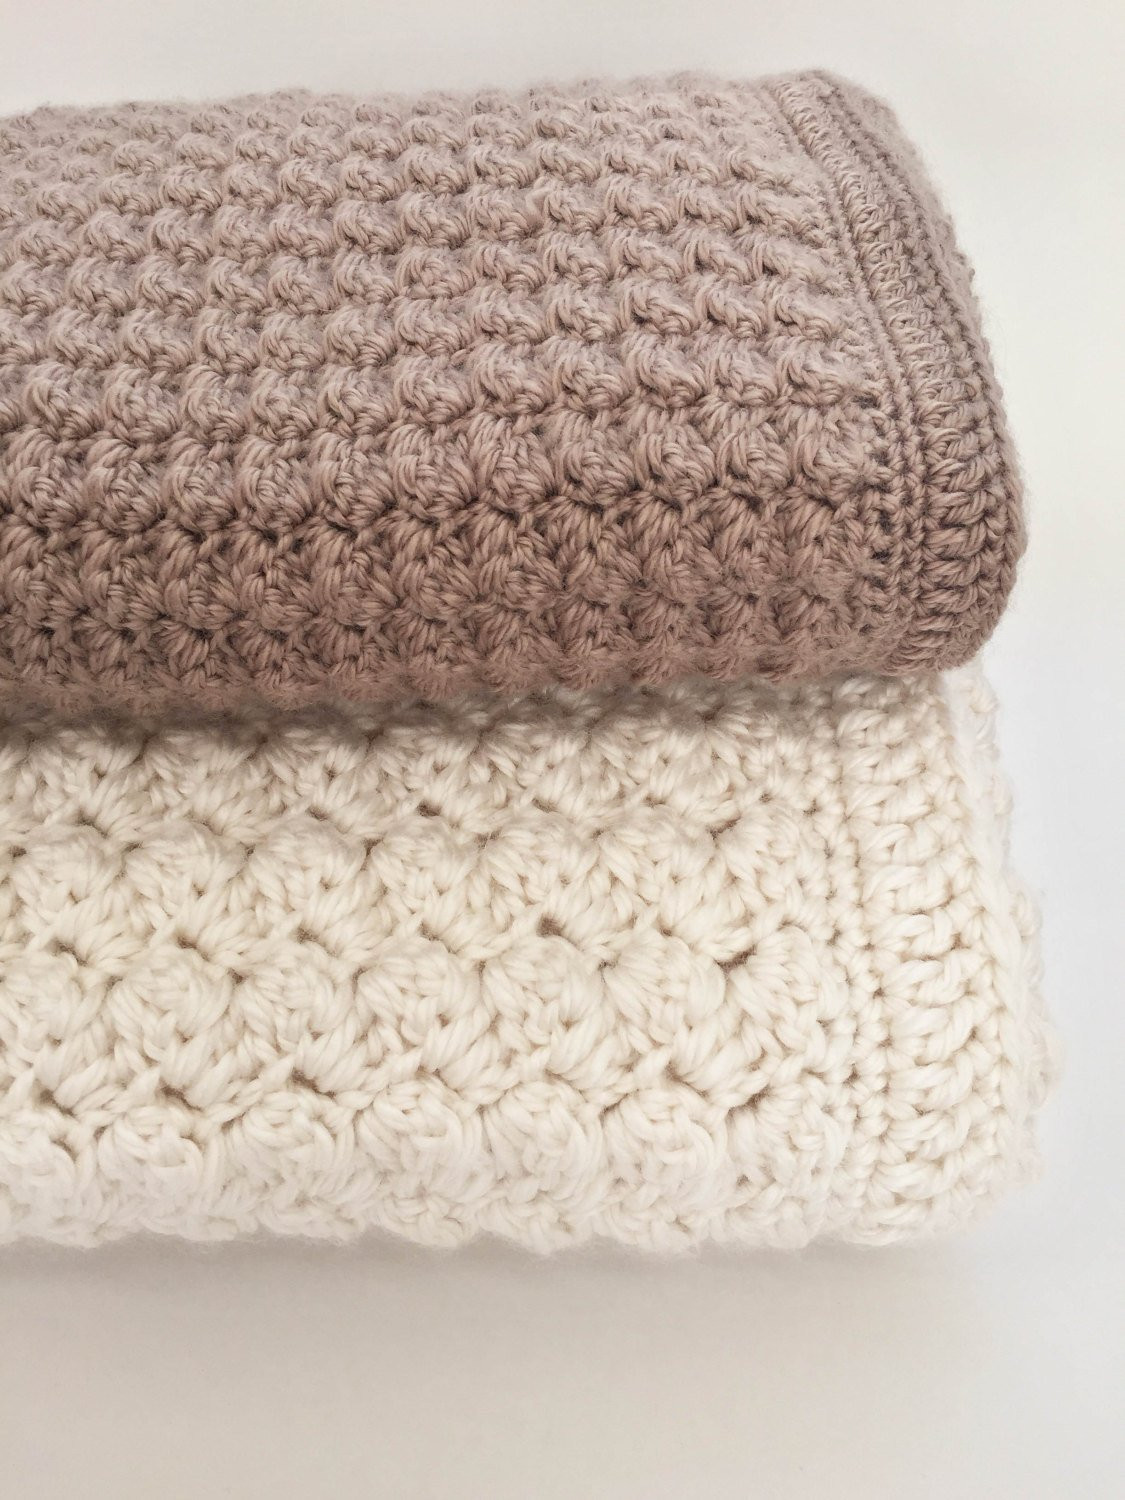 Thick Yarn Crochet Fresh Crochet Baby Blanket Pattern Chunky Crochet Baby Blanket Of Superb 49 Models Thick Yarn Crochet